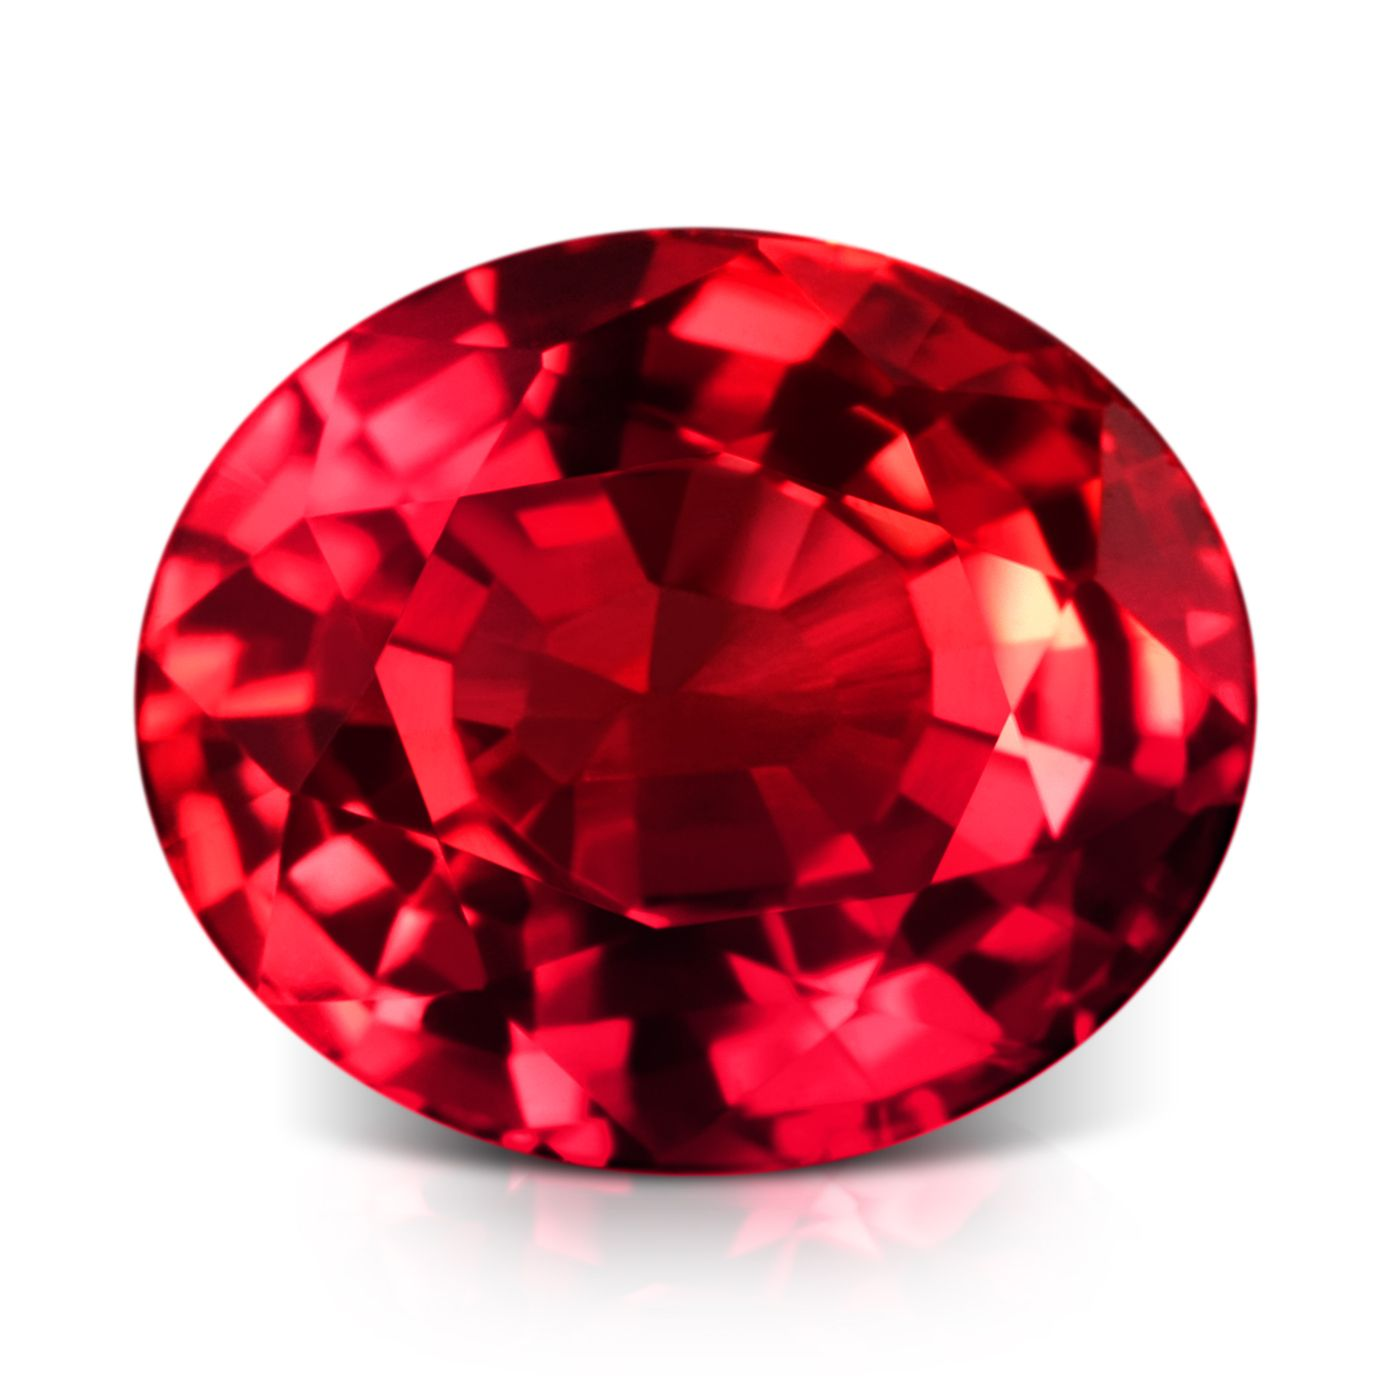 gems gemstone manik ratti ruby low certified natural at prices purpose online buy amazon akshay astrological india lab by jewellery in dp for store